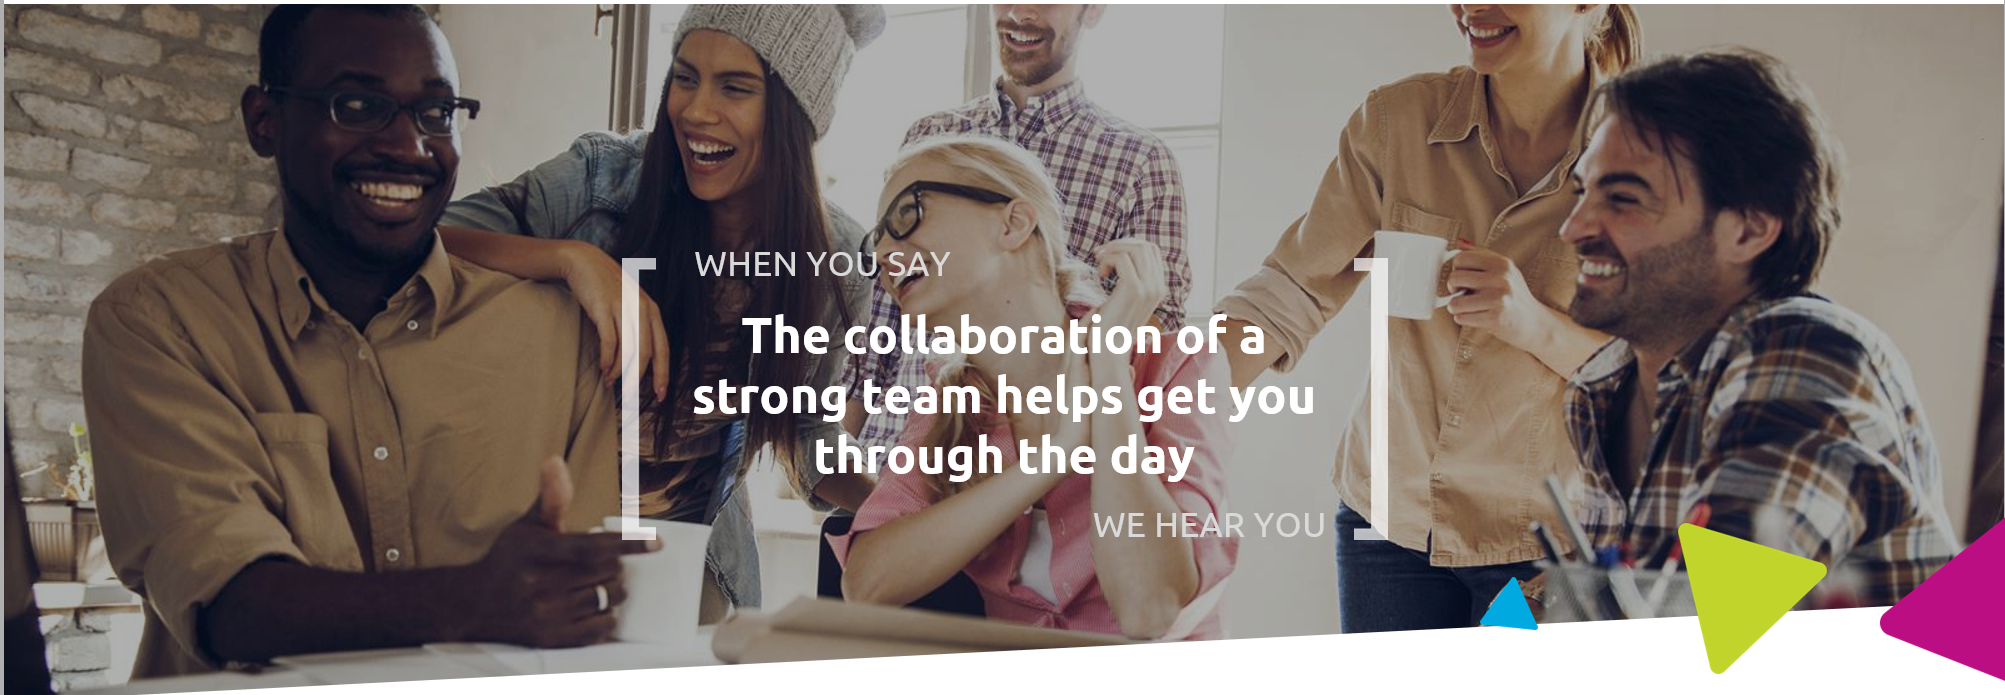 When you say the collaboration of a strong team helps get you through the day, we hear you